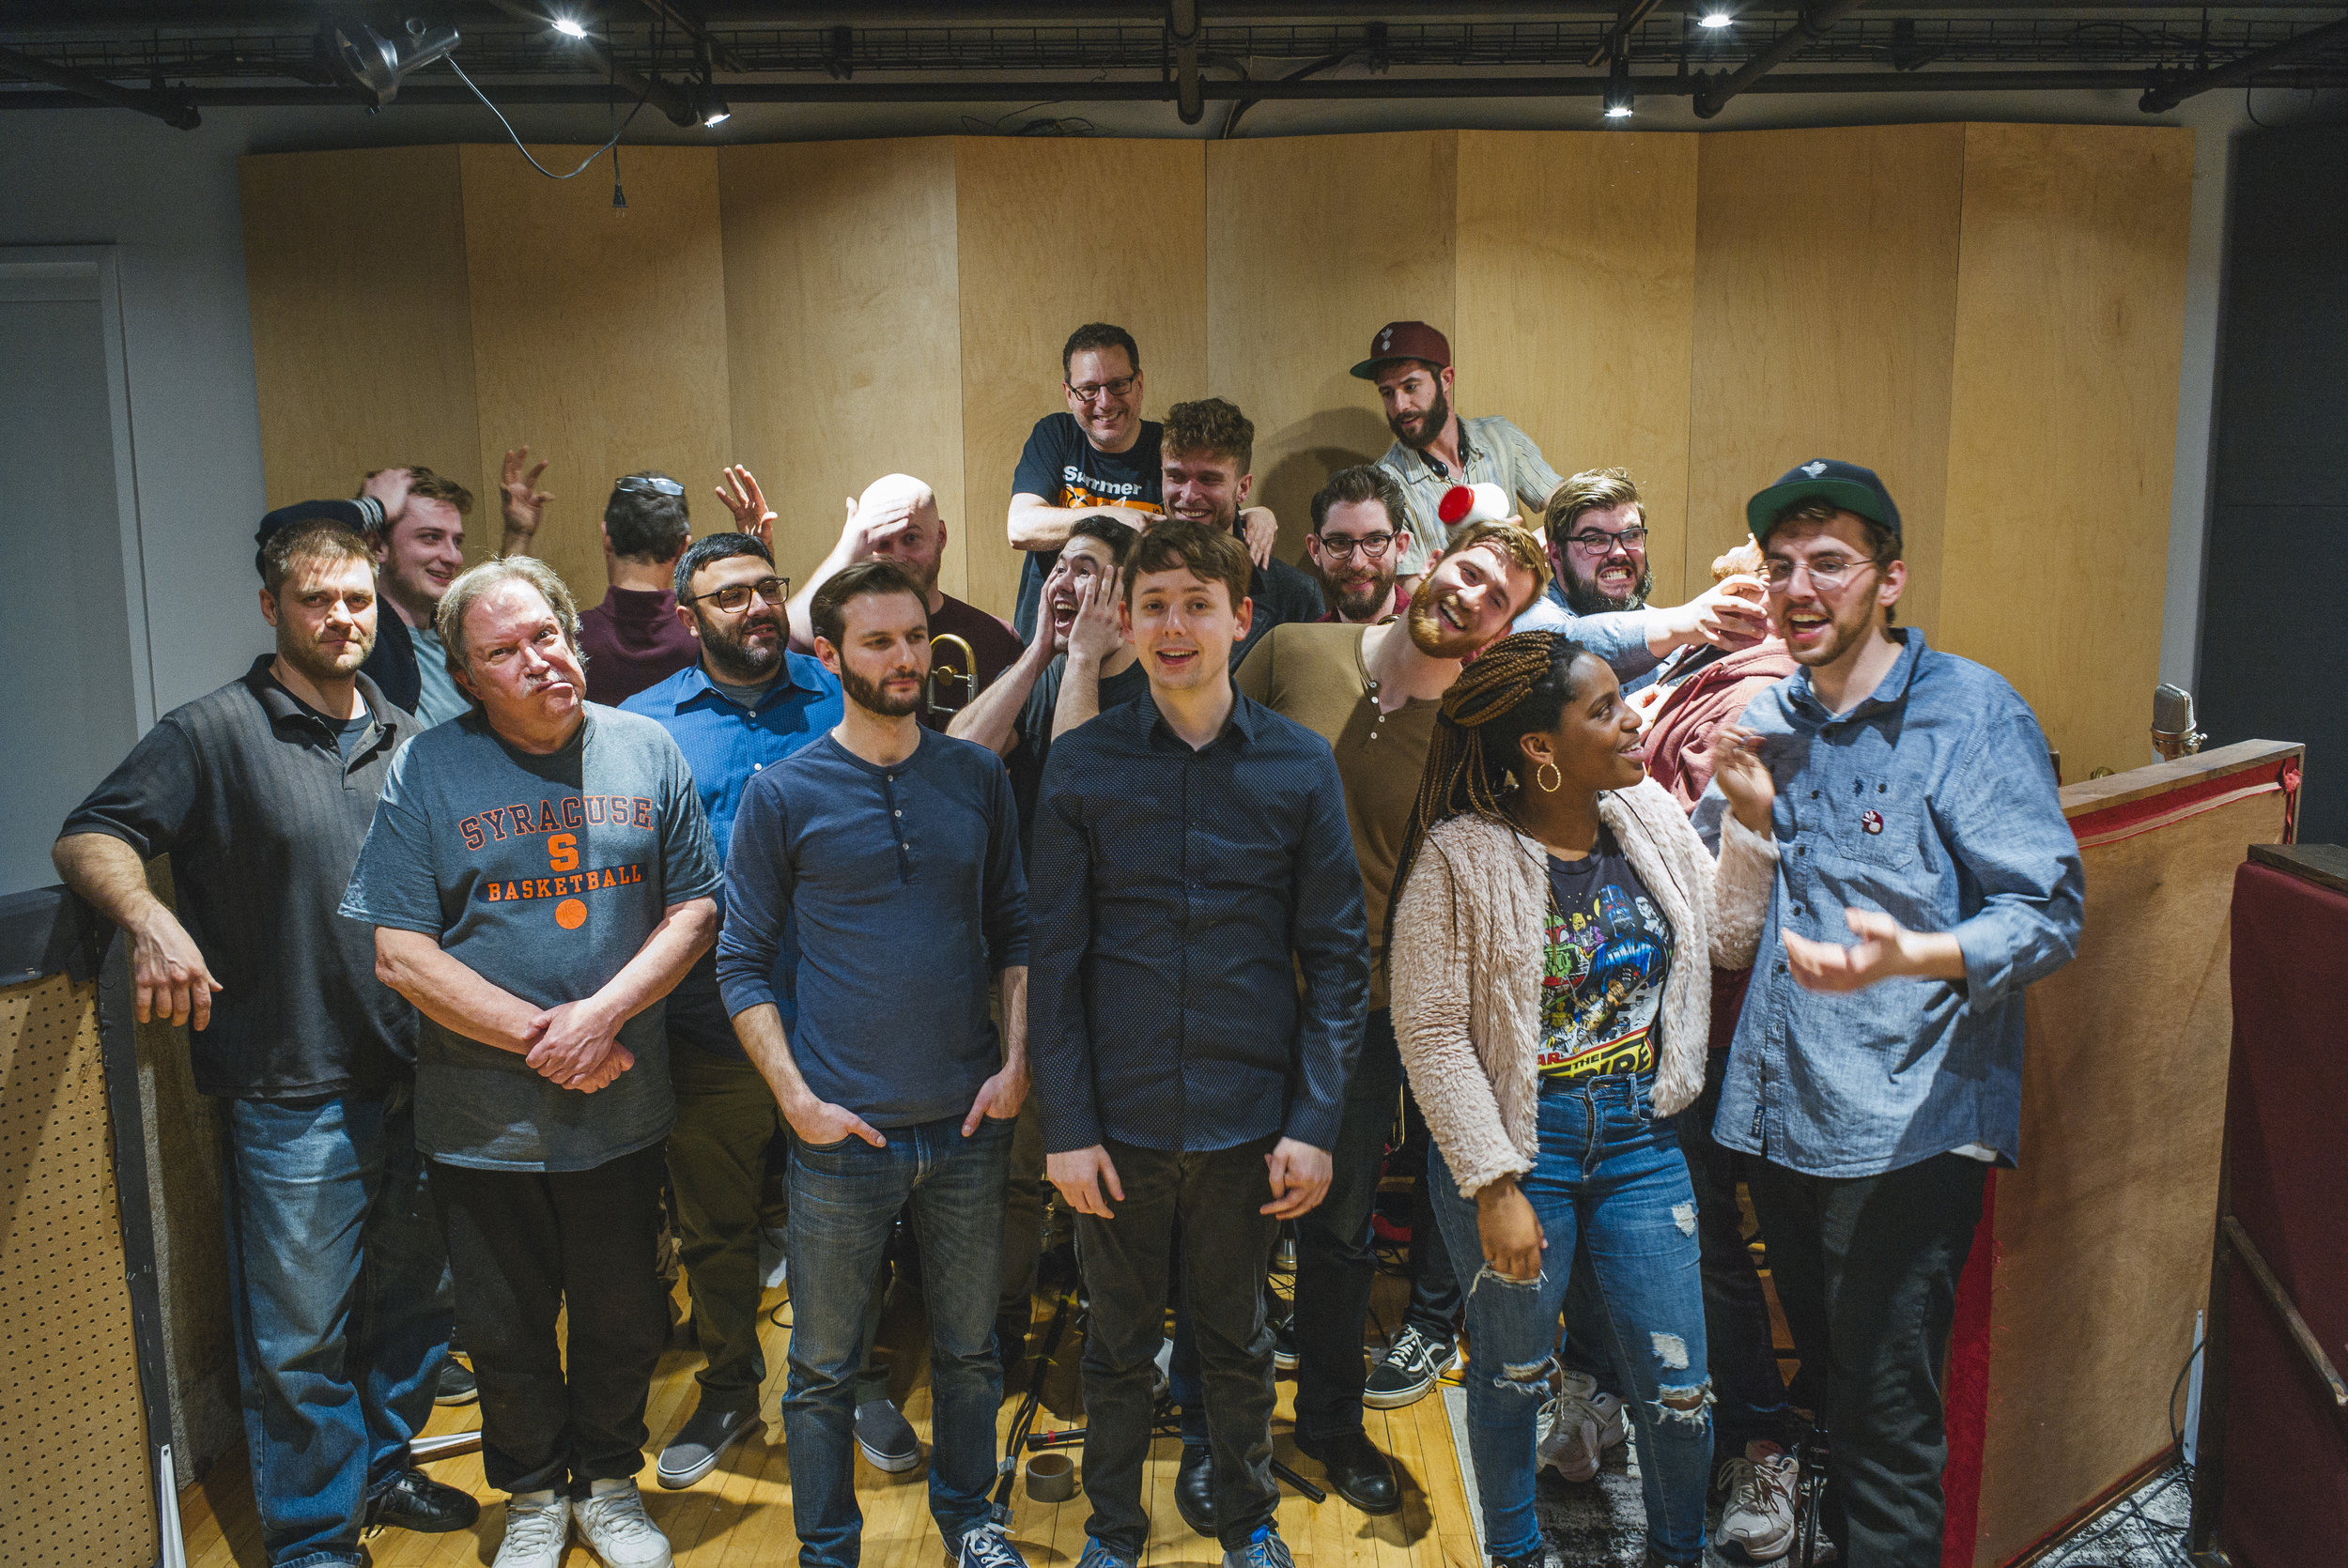 The band calmly takes a family portrait after a 3-day recording session